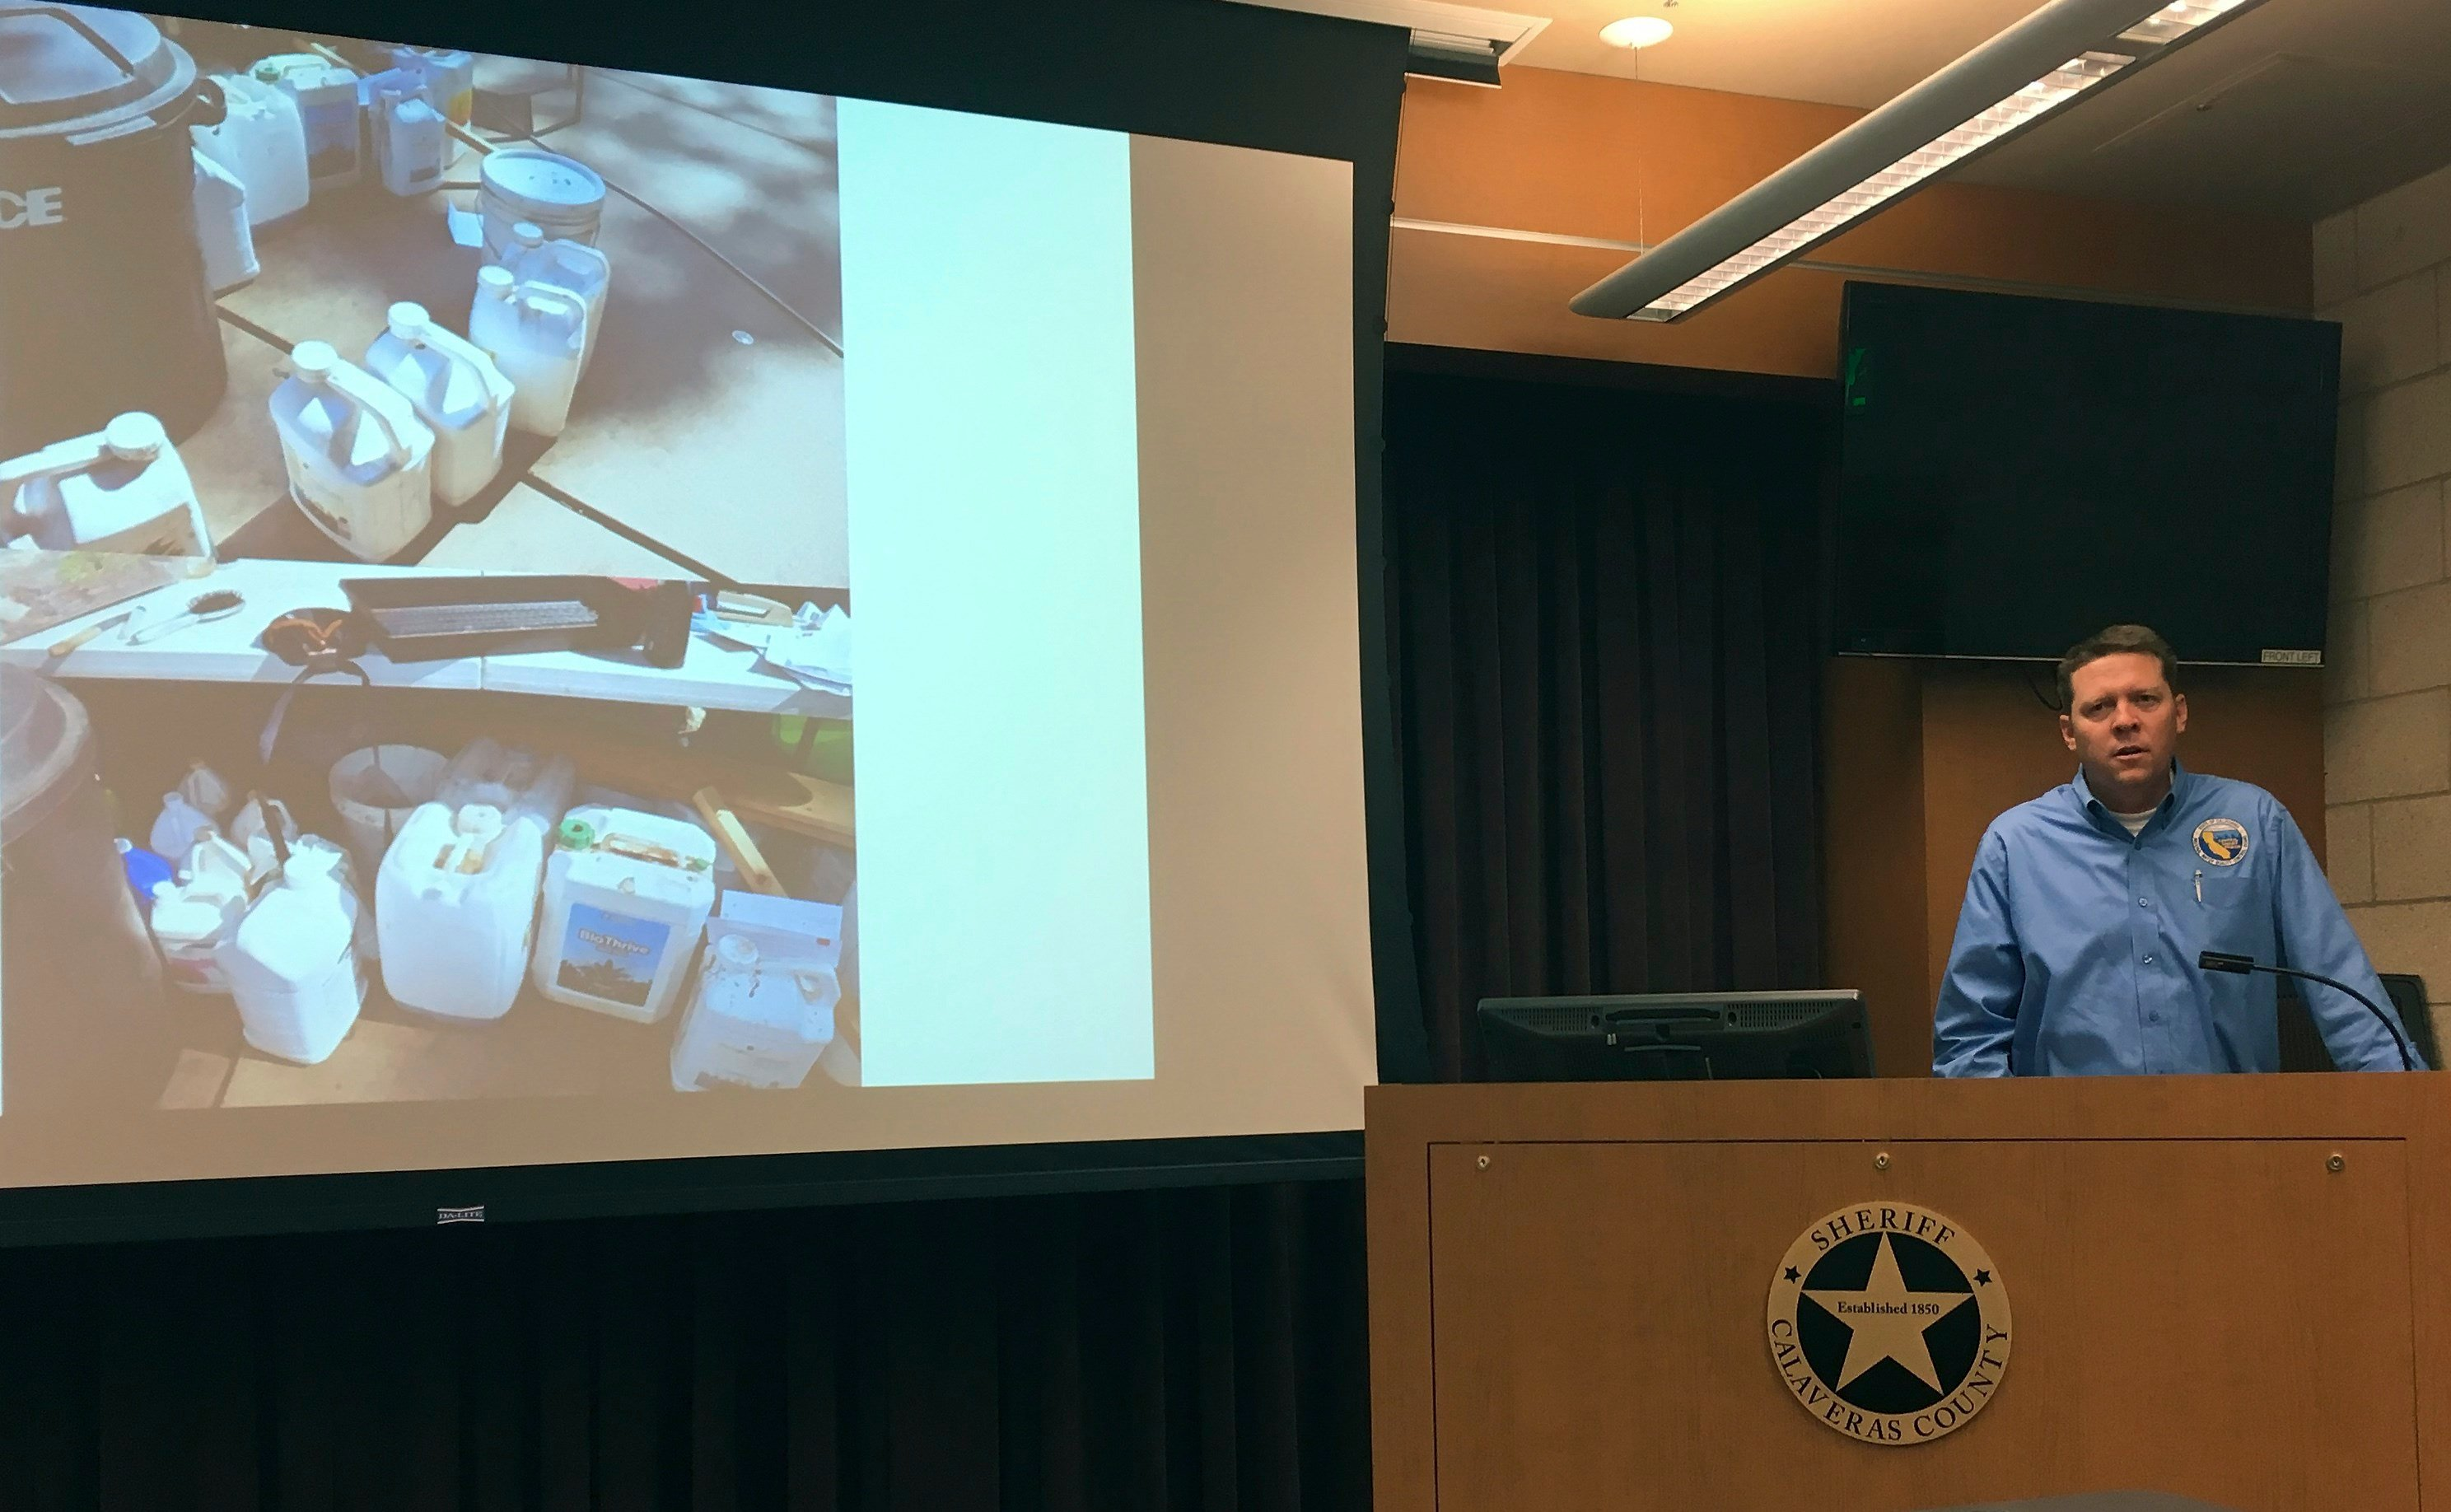 Clint Snyder, assistant executive officer of the Central Valley Regional Water Quality Control Board, speaks about environmental damage from illegal marijuana farms at the Calaveras County Sheriff's office on Thursday. (AP Photo/Kathleen Ronayne)